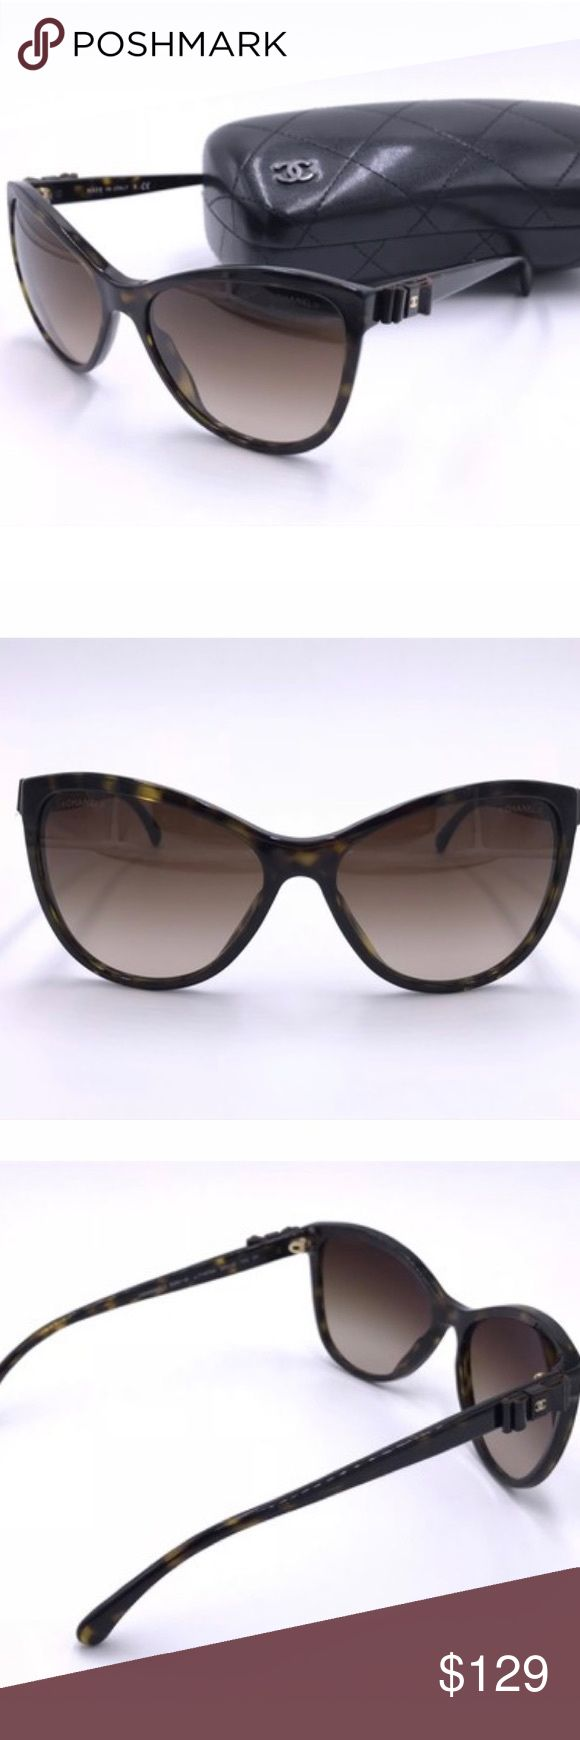 """Chanel Brown Tortoise 5281q Cat Eye Sunglasses Chanel Brown Tortoise Cat Eye 5281q C.58-16 140 Sunglasses 1""""L x 1""""H x 1""""W Sunglasses are in great shape except for a small scratch in the center of the right lense as seen in the last picture. Other than that they look brand new and absolutely fabulous. The frame is very clean. CHANEL Accessories Sunglasses"""